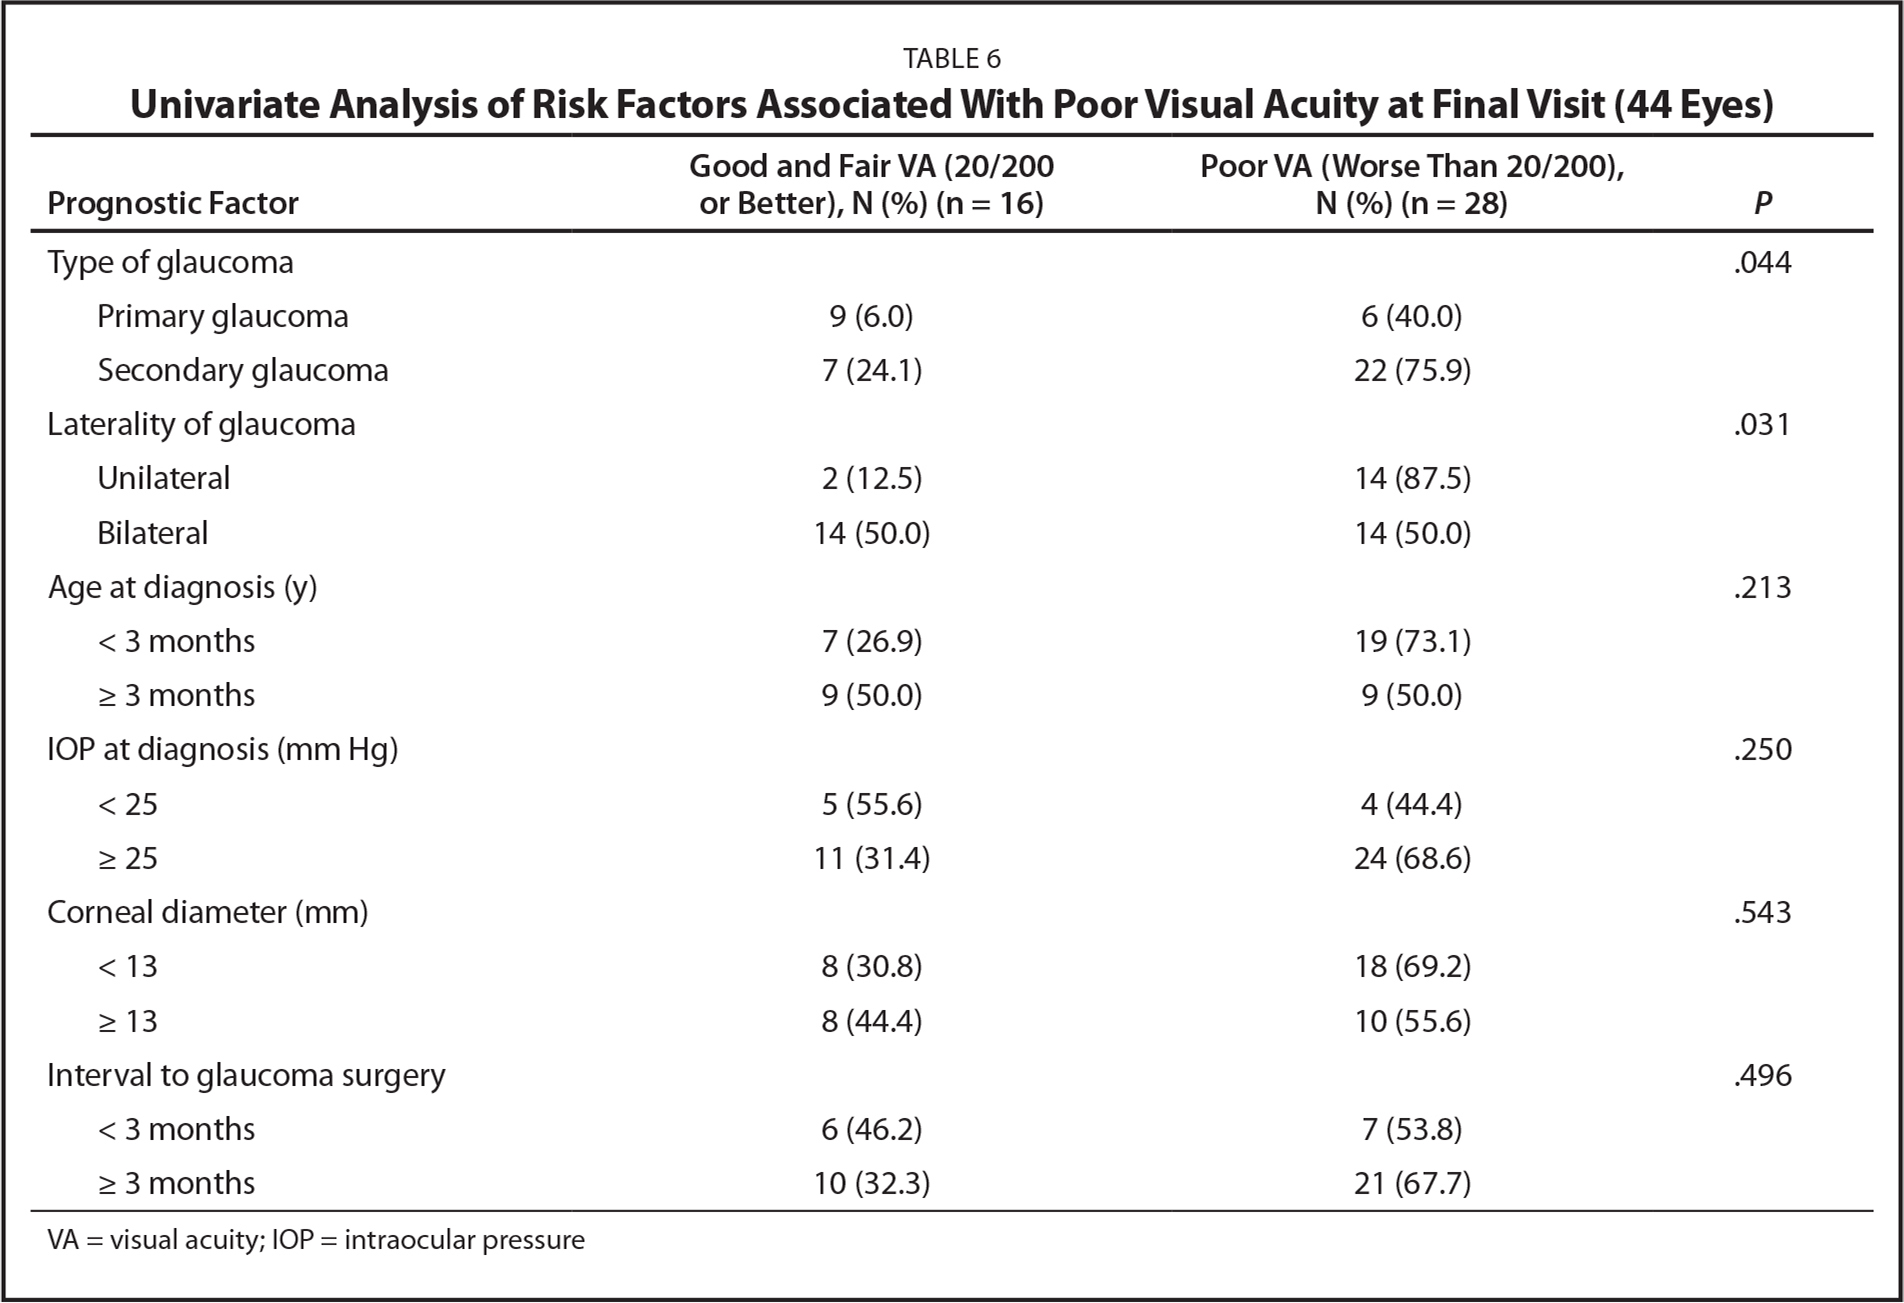 Univariate Analysis of Risk Factors Associated With Poor Visual Acuity at Final Visit (44 Eyes)